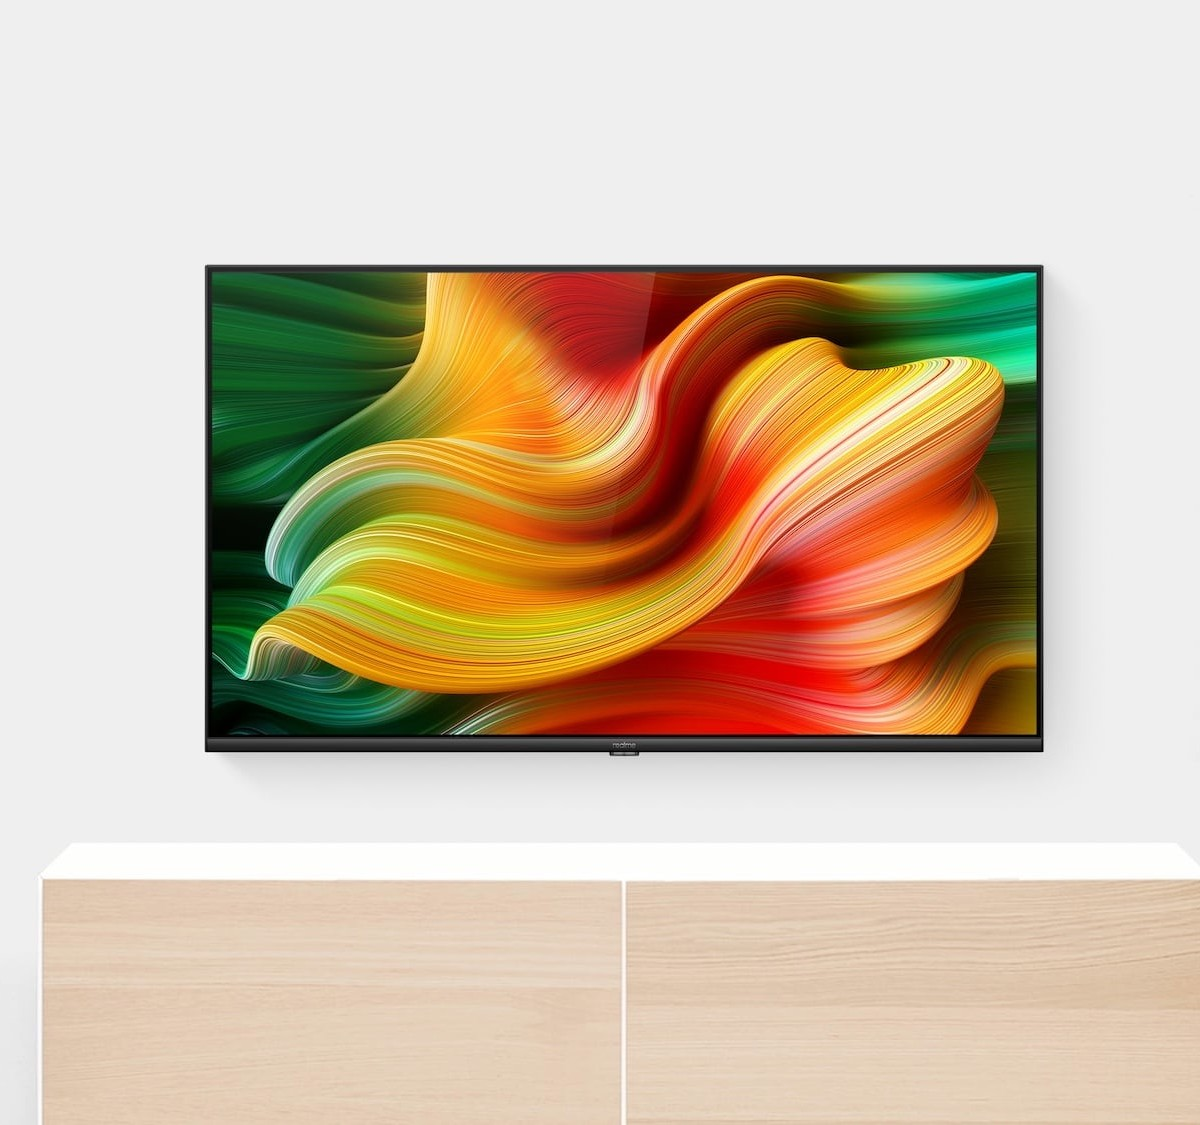 realme Smart TV Android Television offers a beautifully bright LED display